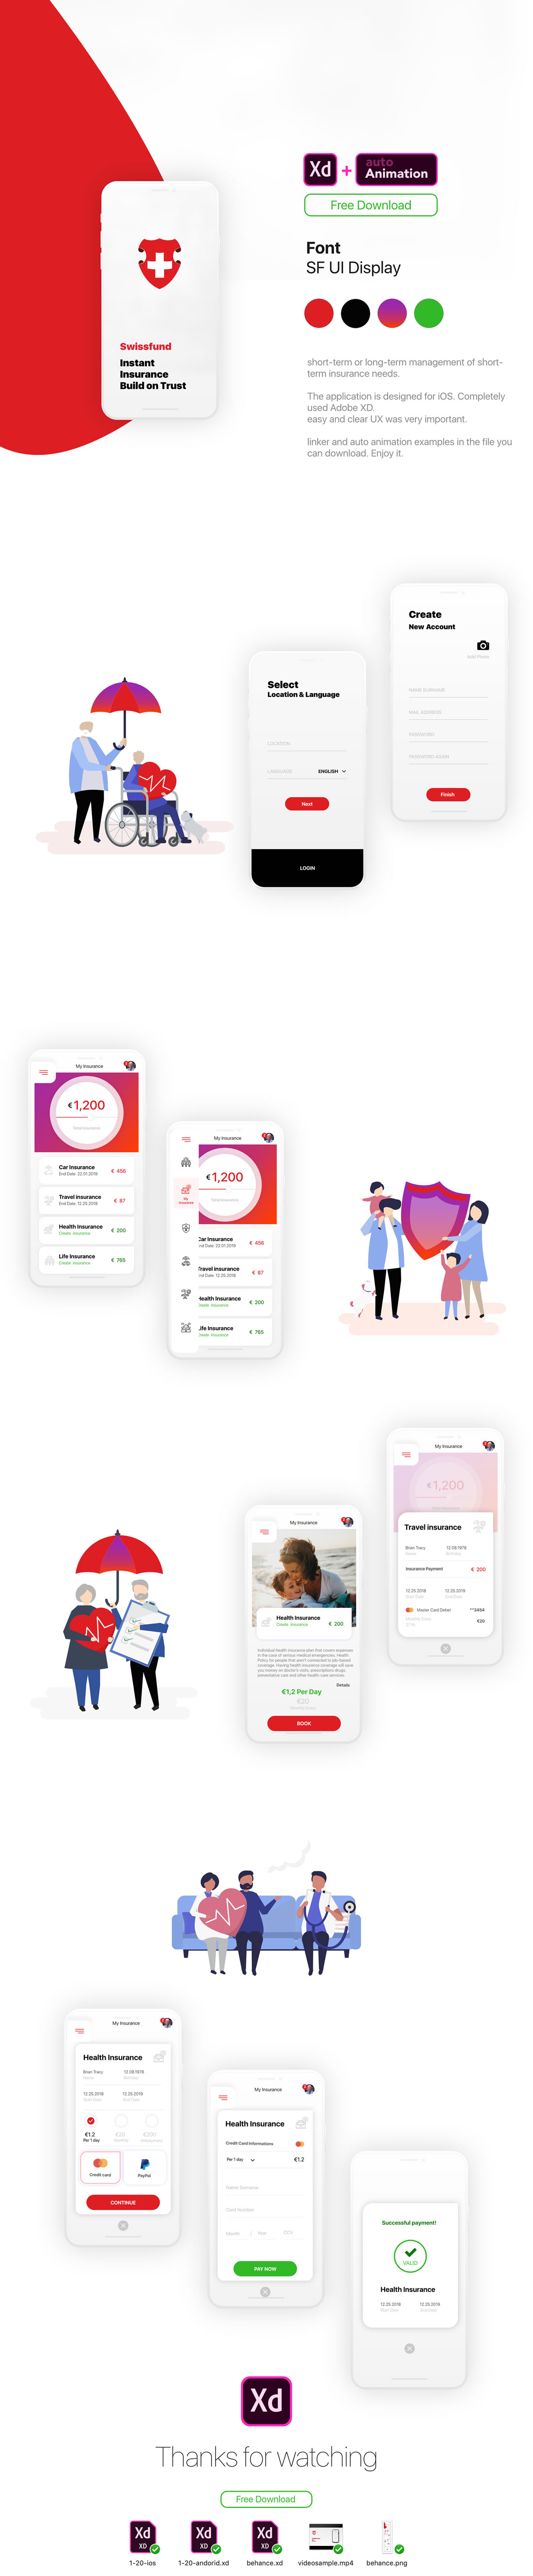 Template d'application mobile Adobe XD + animation Gratuit 2